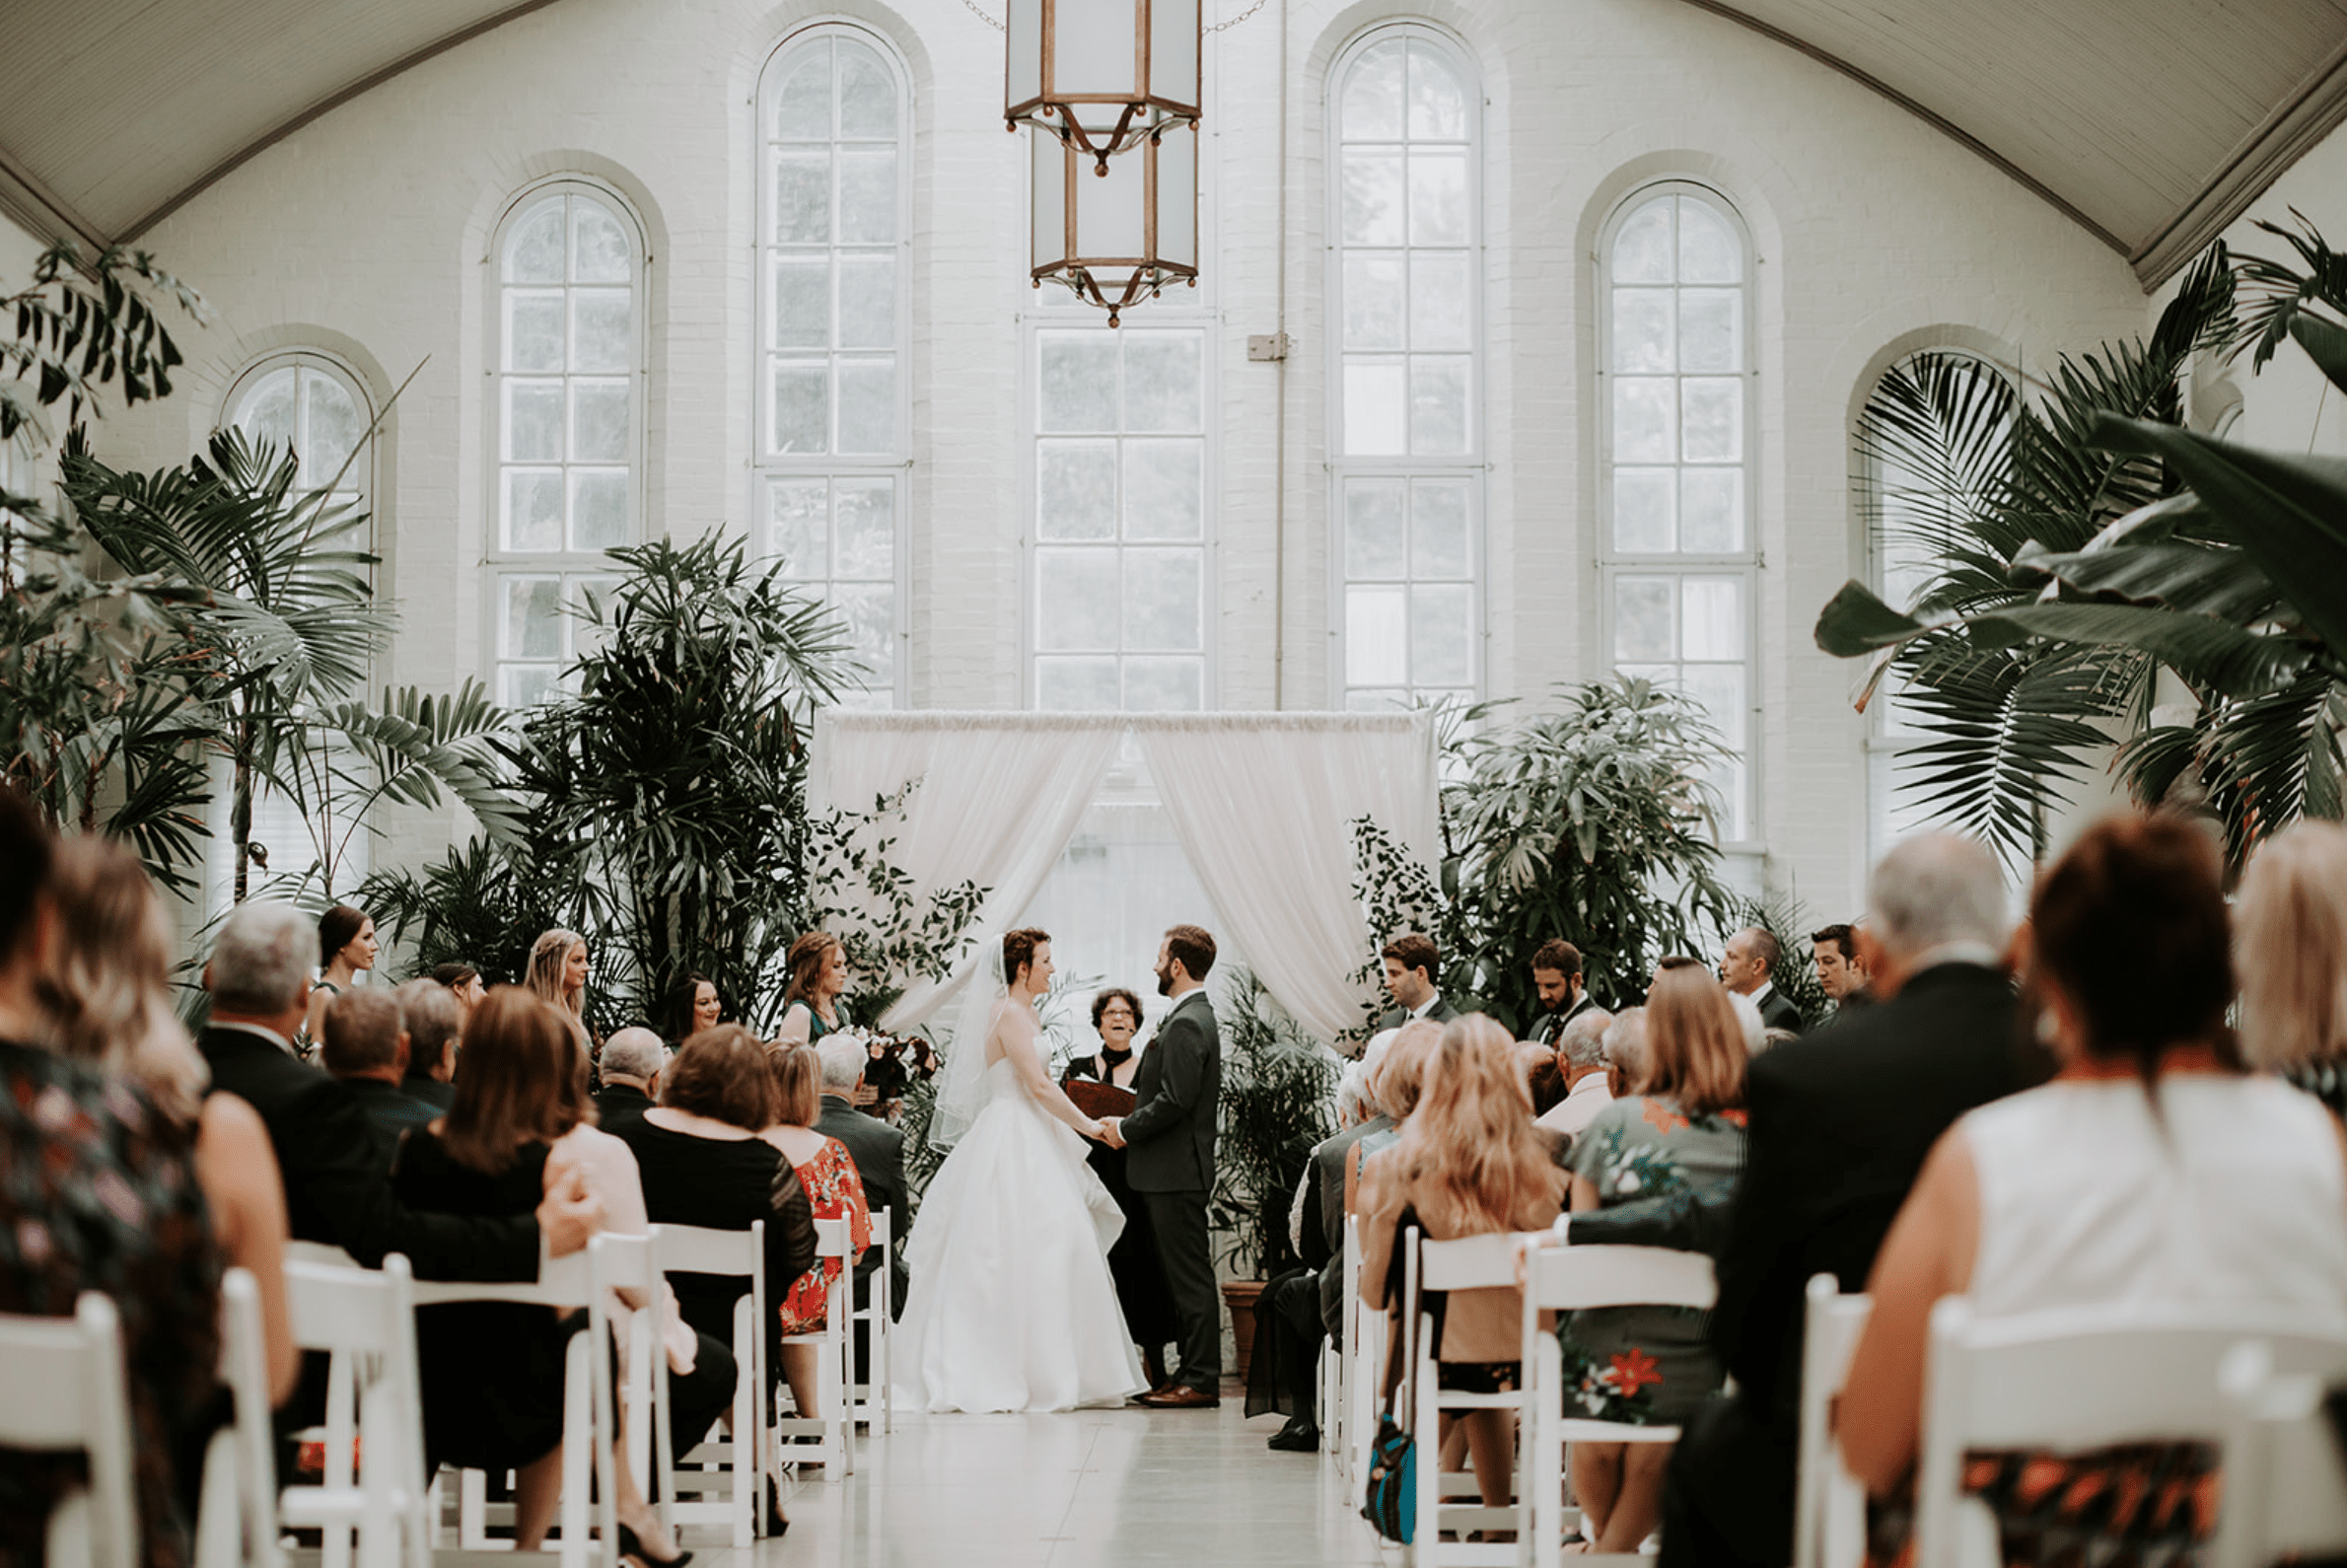 Wedding ceremony at Piper Palm House in Missouri